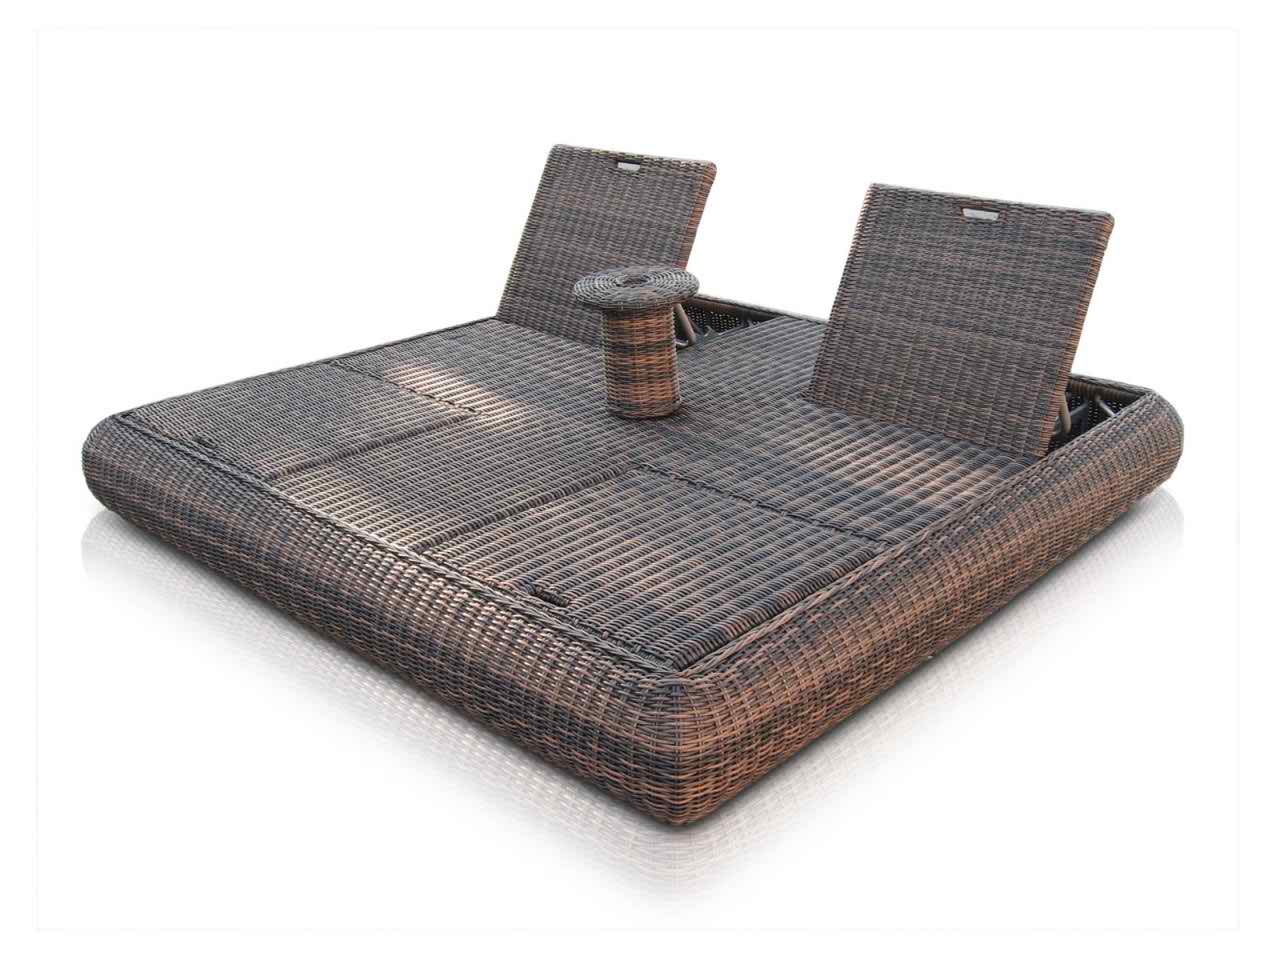 https://www.firstfurniture.co.uk/pub/media/catalog/product/s/k/skyline_mandalay_double_sun_lounger.jpeg